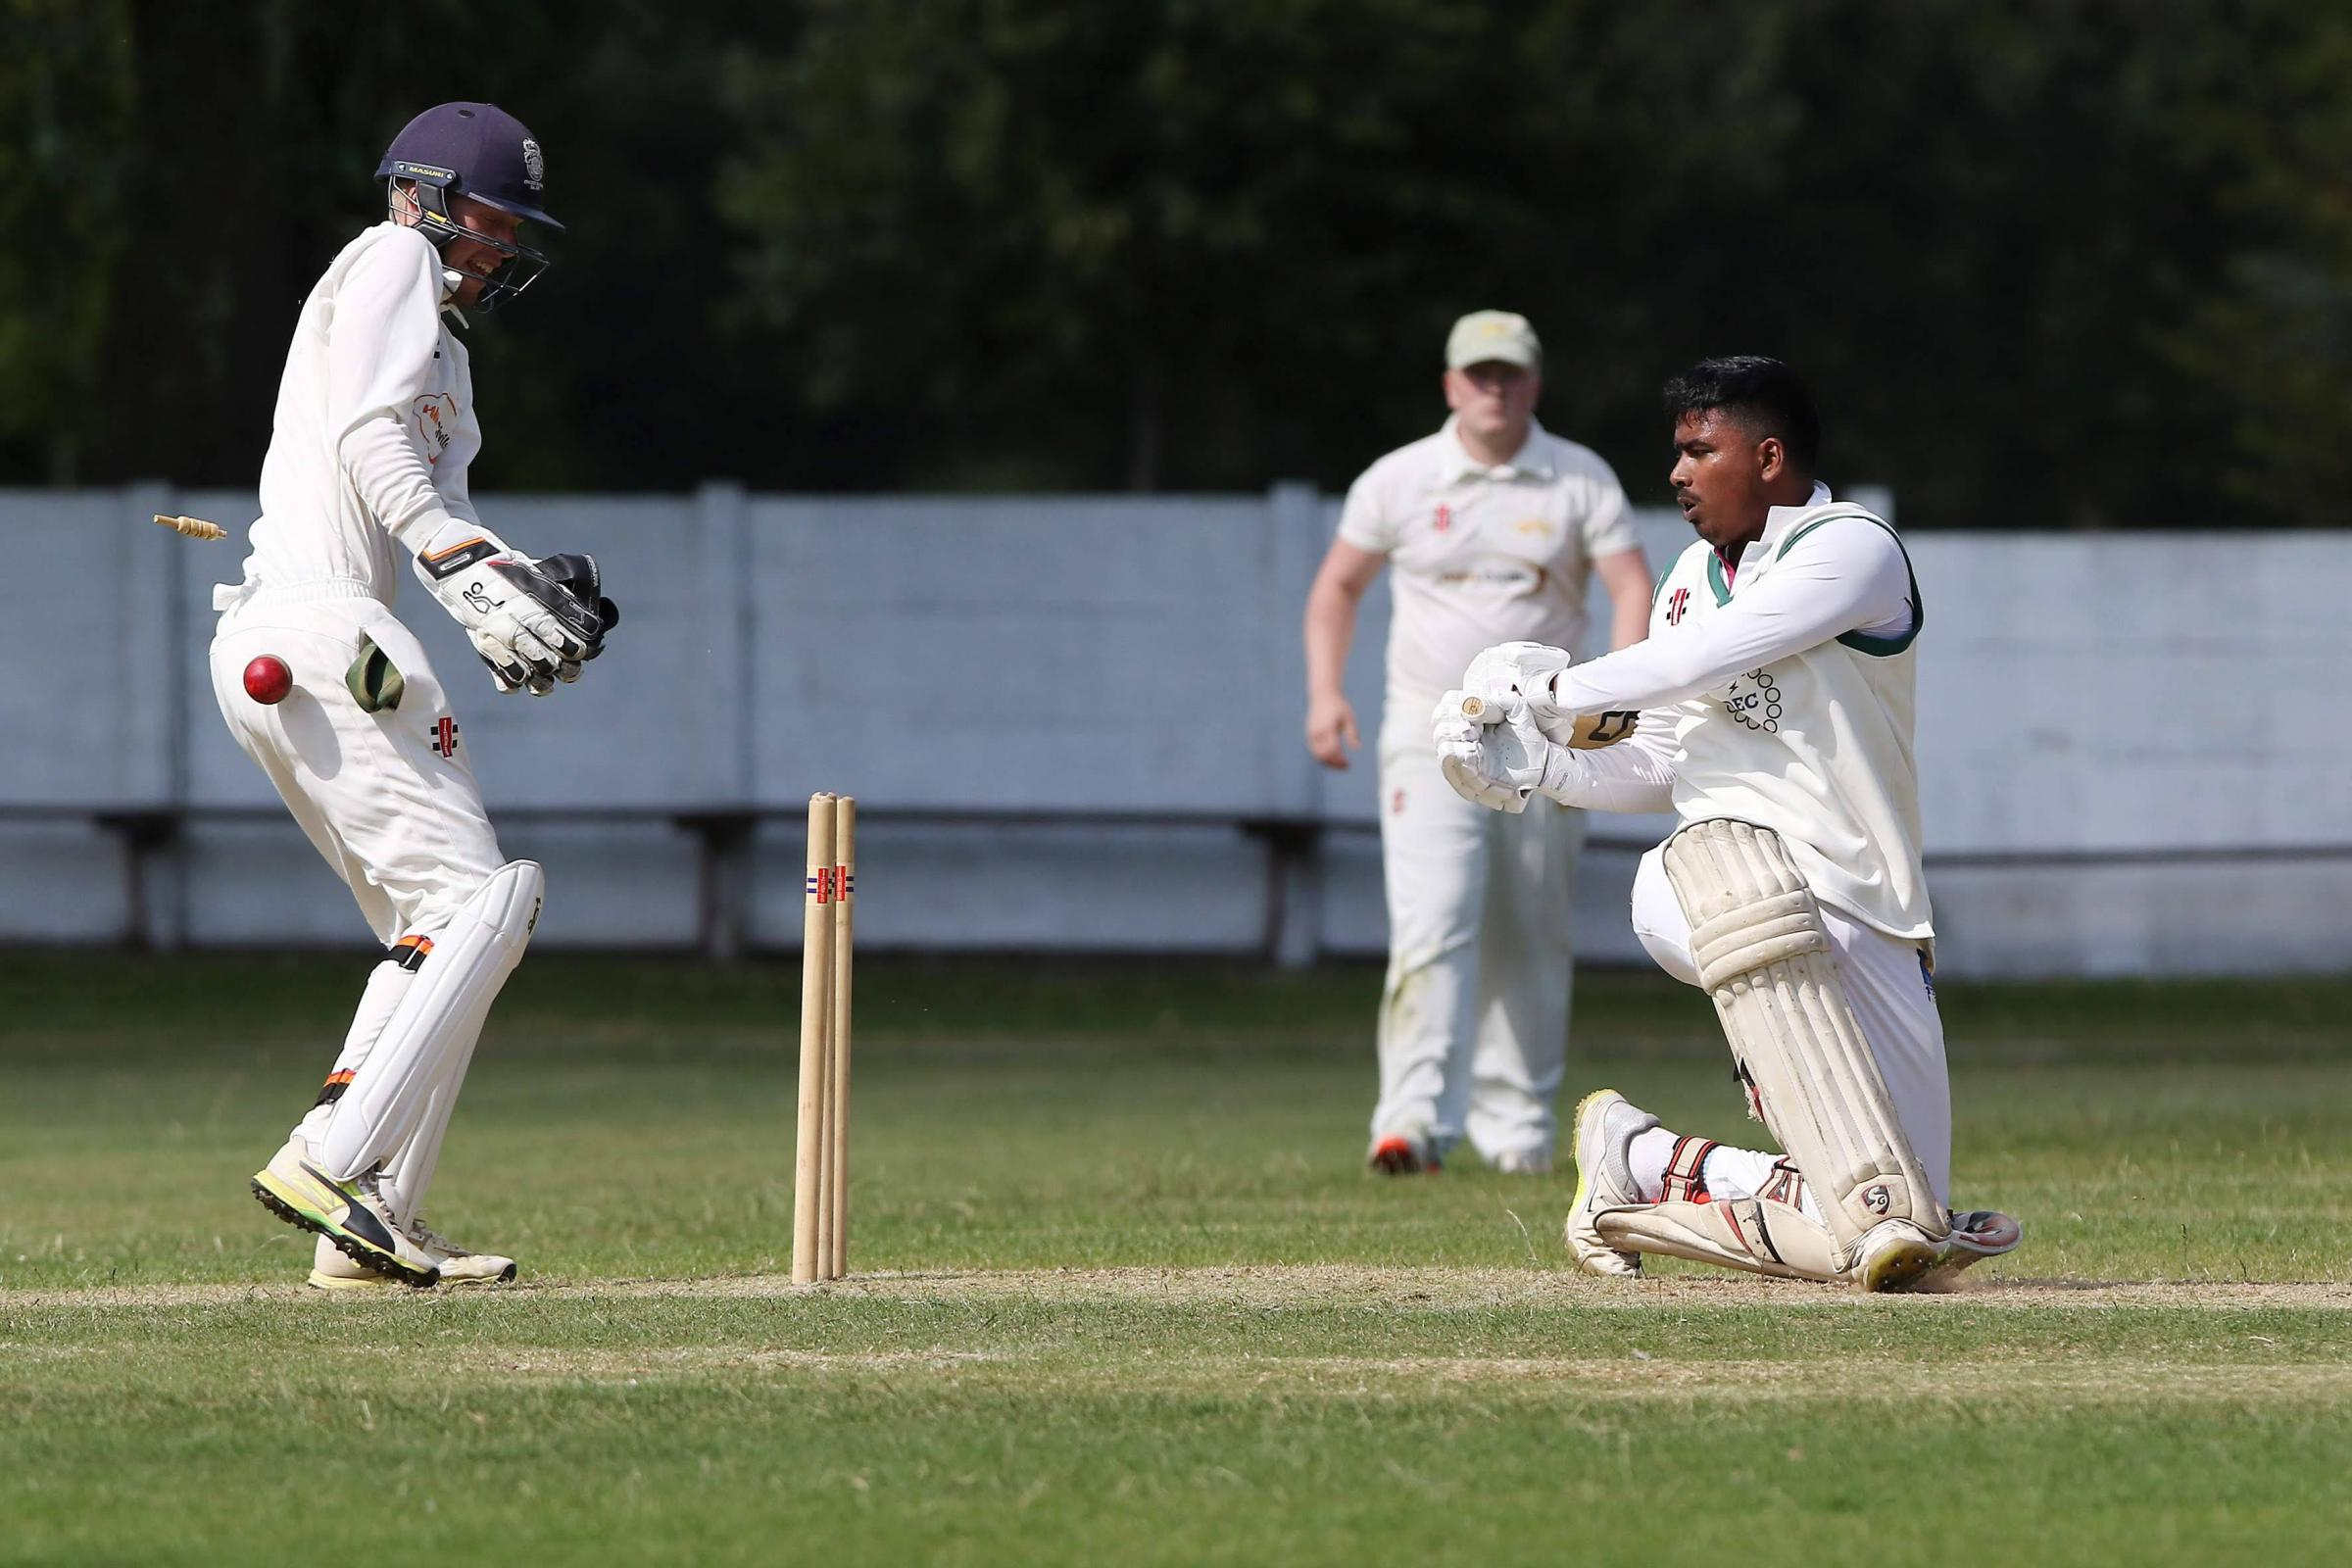 Tharindu Rathnayake is Bowled By Daniel Chillingworth during the NYSD Premier Division match between Thornaby and Stokesley